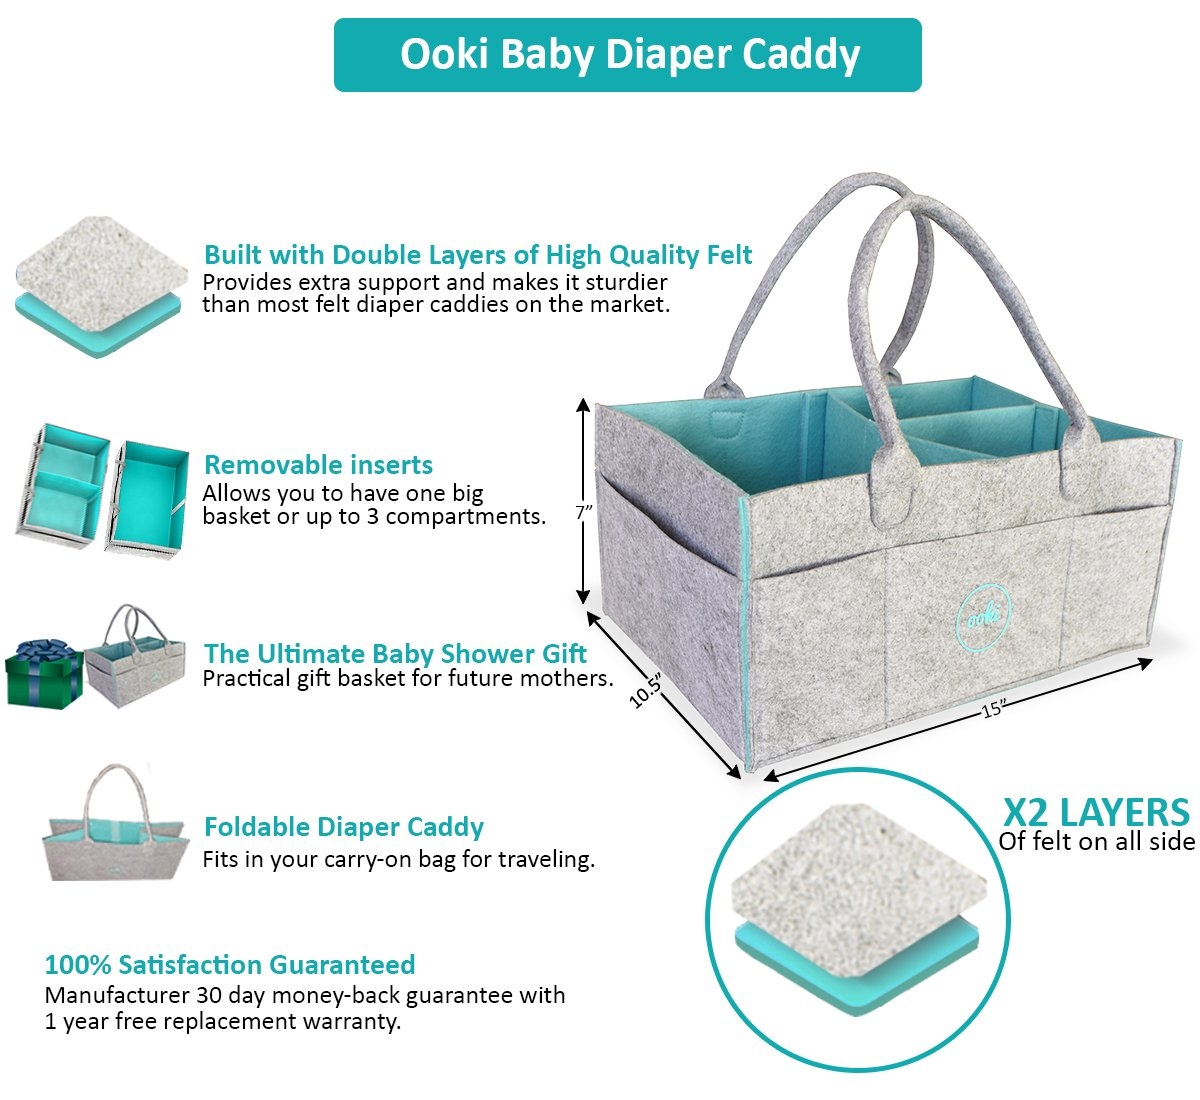 Ooki Baby Large Diaper Caddy Portable Car Seat Travel Basket with Removable Organizer Inserts Foldable Changing Table Storage Organizer for Multiple Baby Supplies Minimalist Nursery Tote Bag